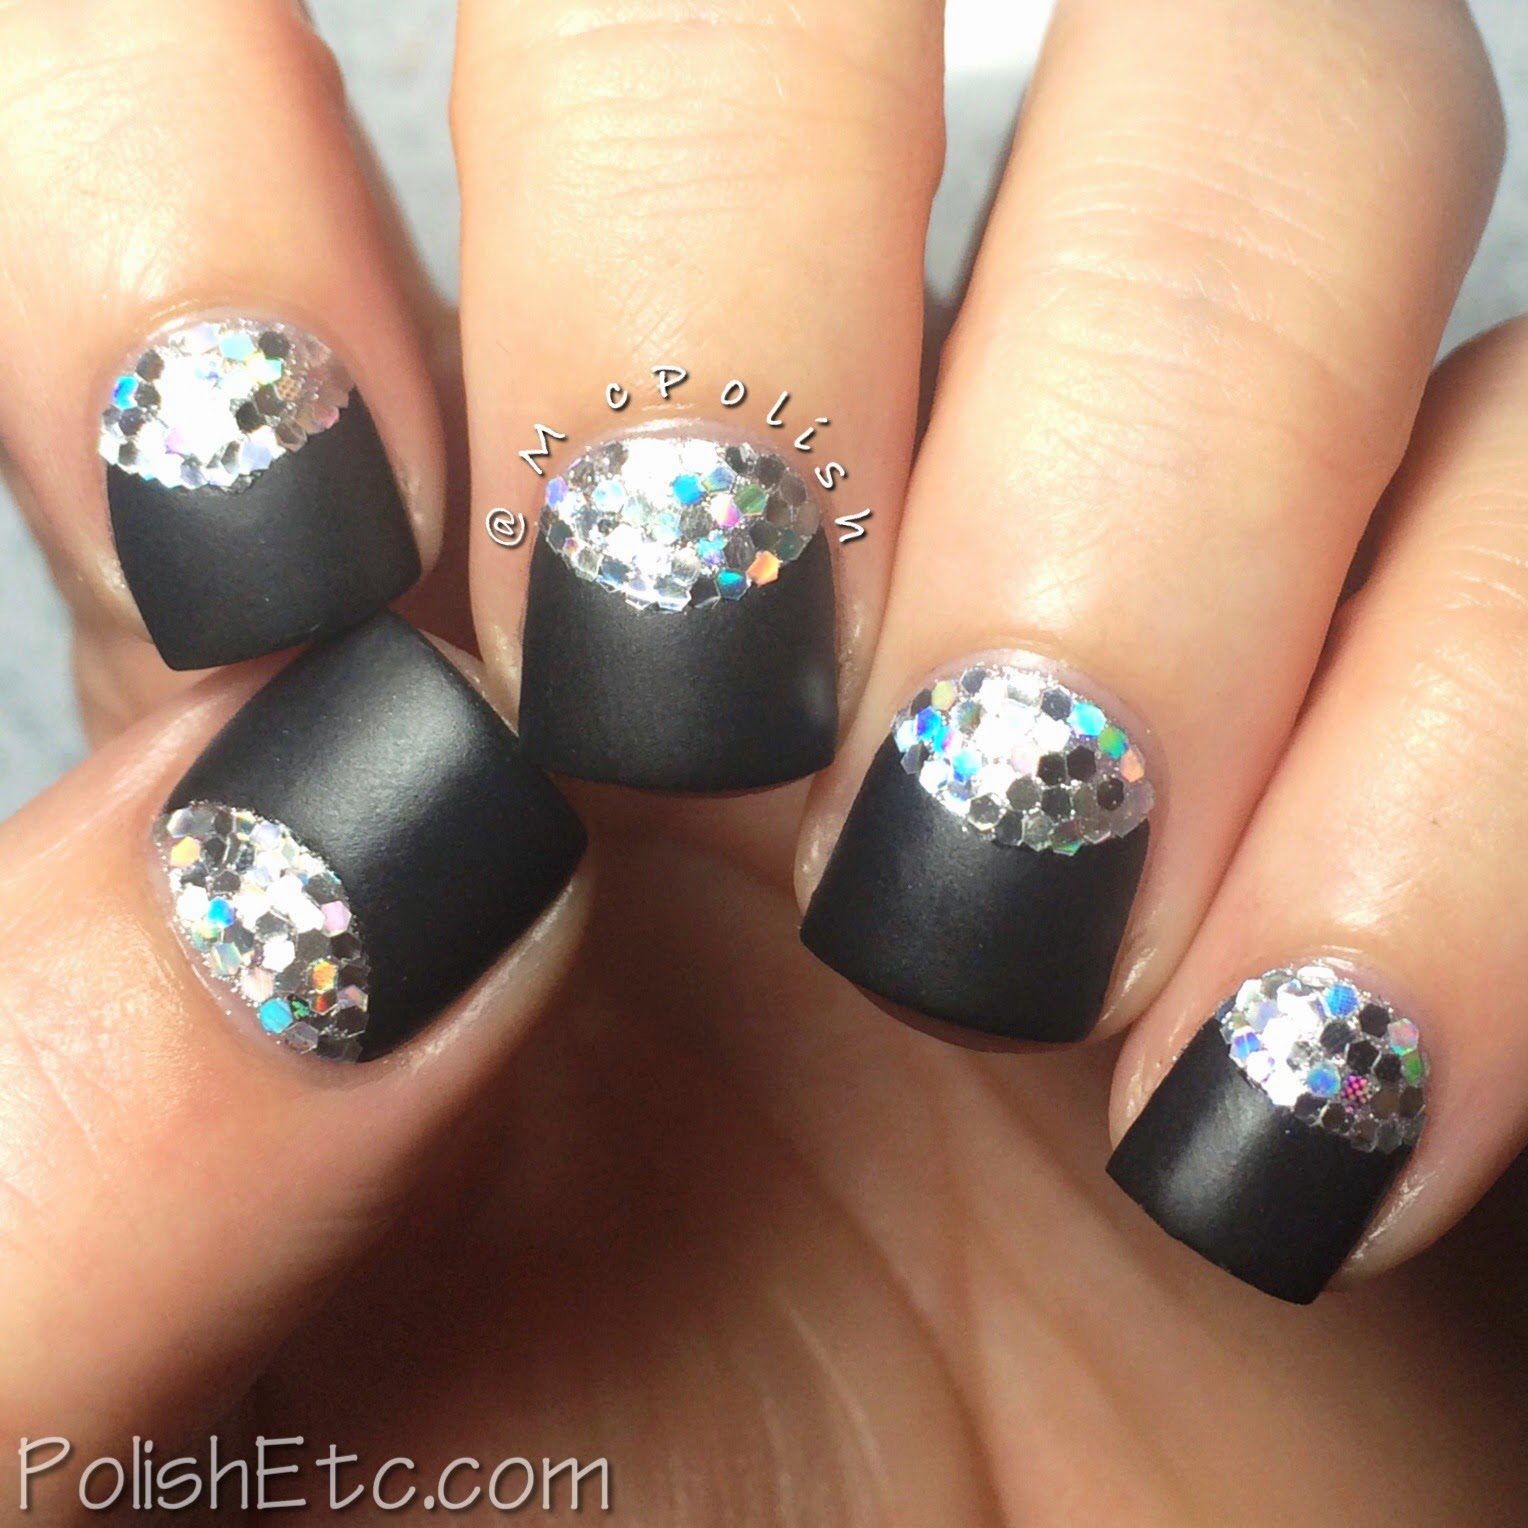 31 Day Nail Art Challenge - #31dc2014 - McPolish - HALF MOON